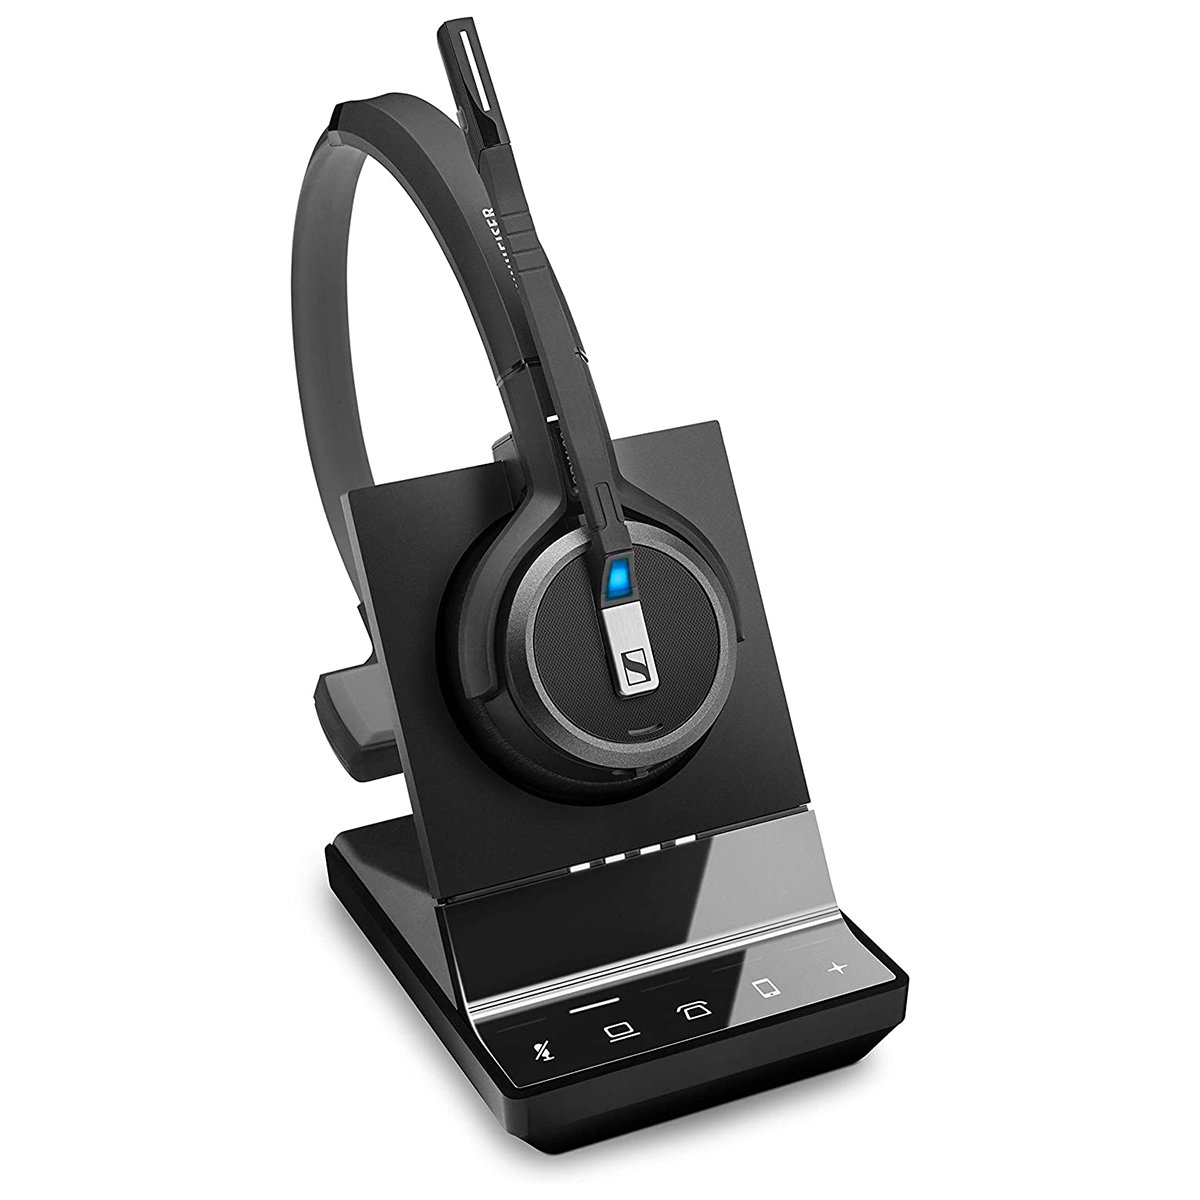 EPOS Sennheiser IMPACT SDW 5036 Wireless 3 in 1 Headset and Base